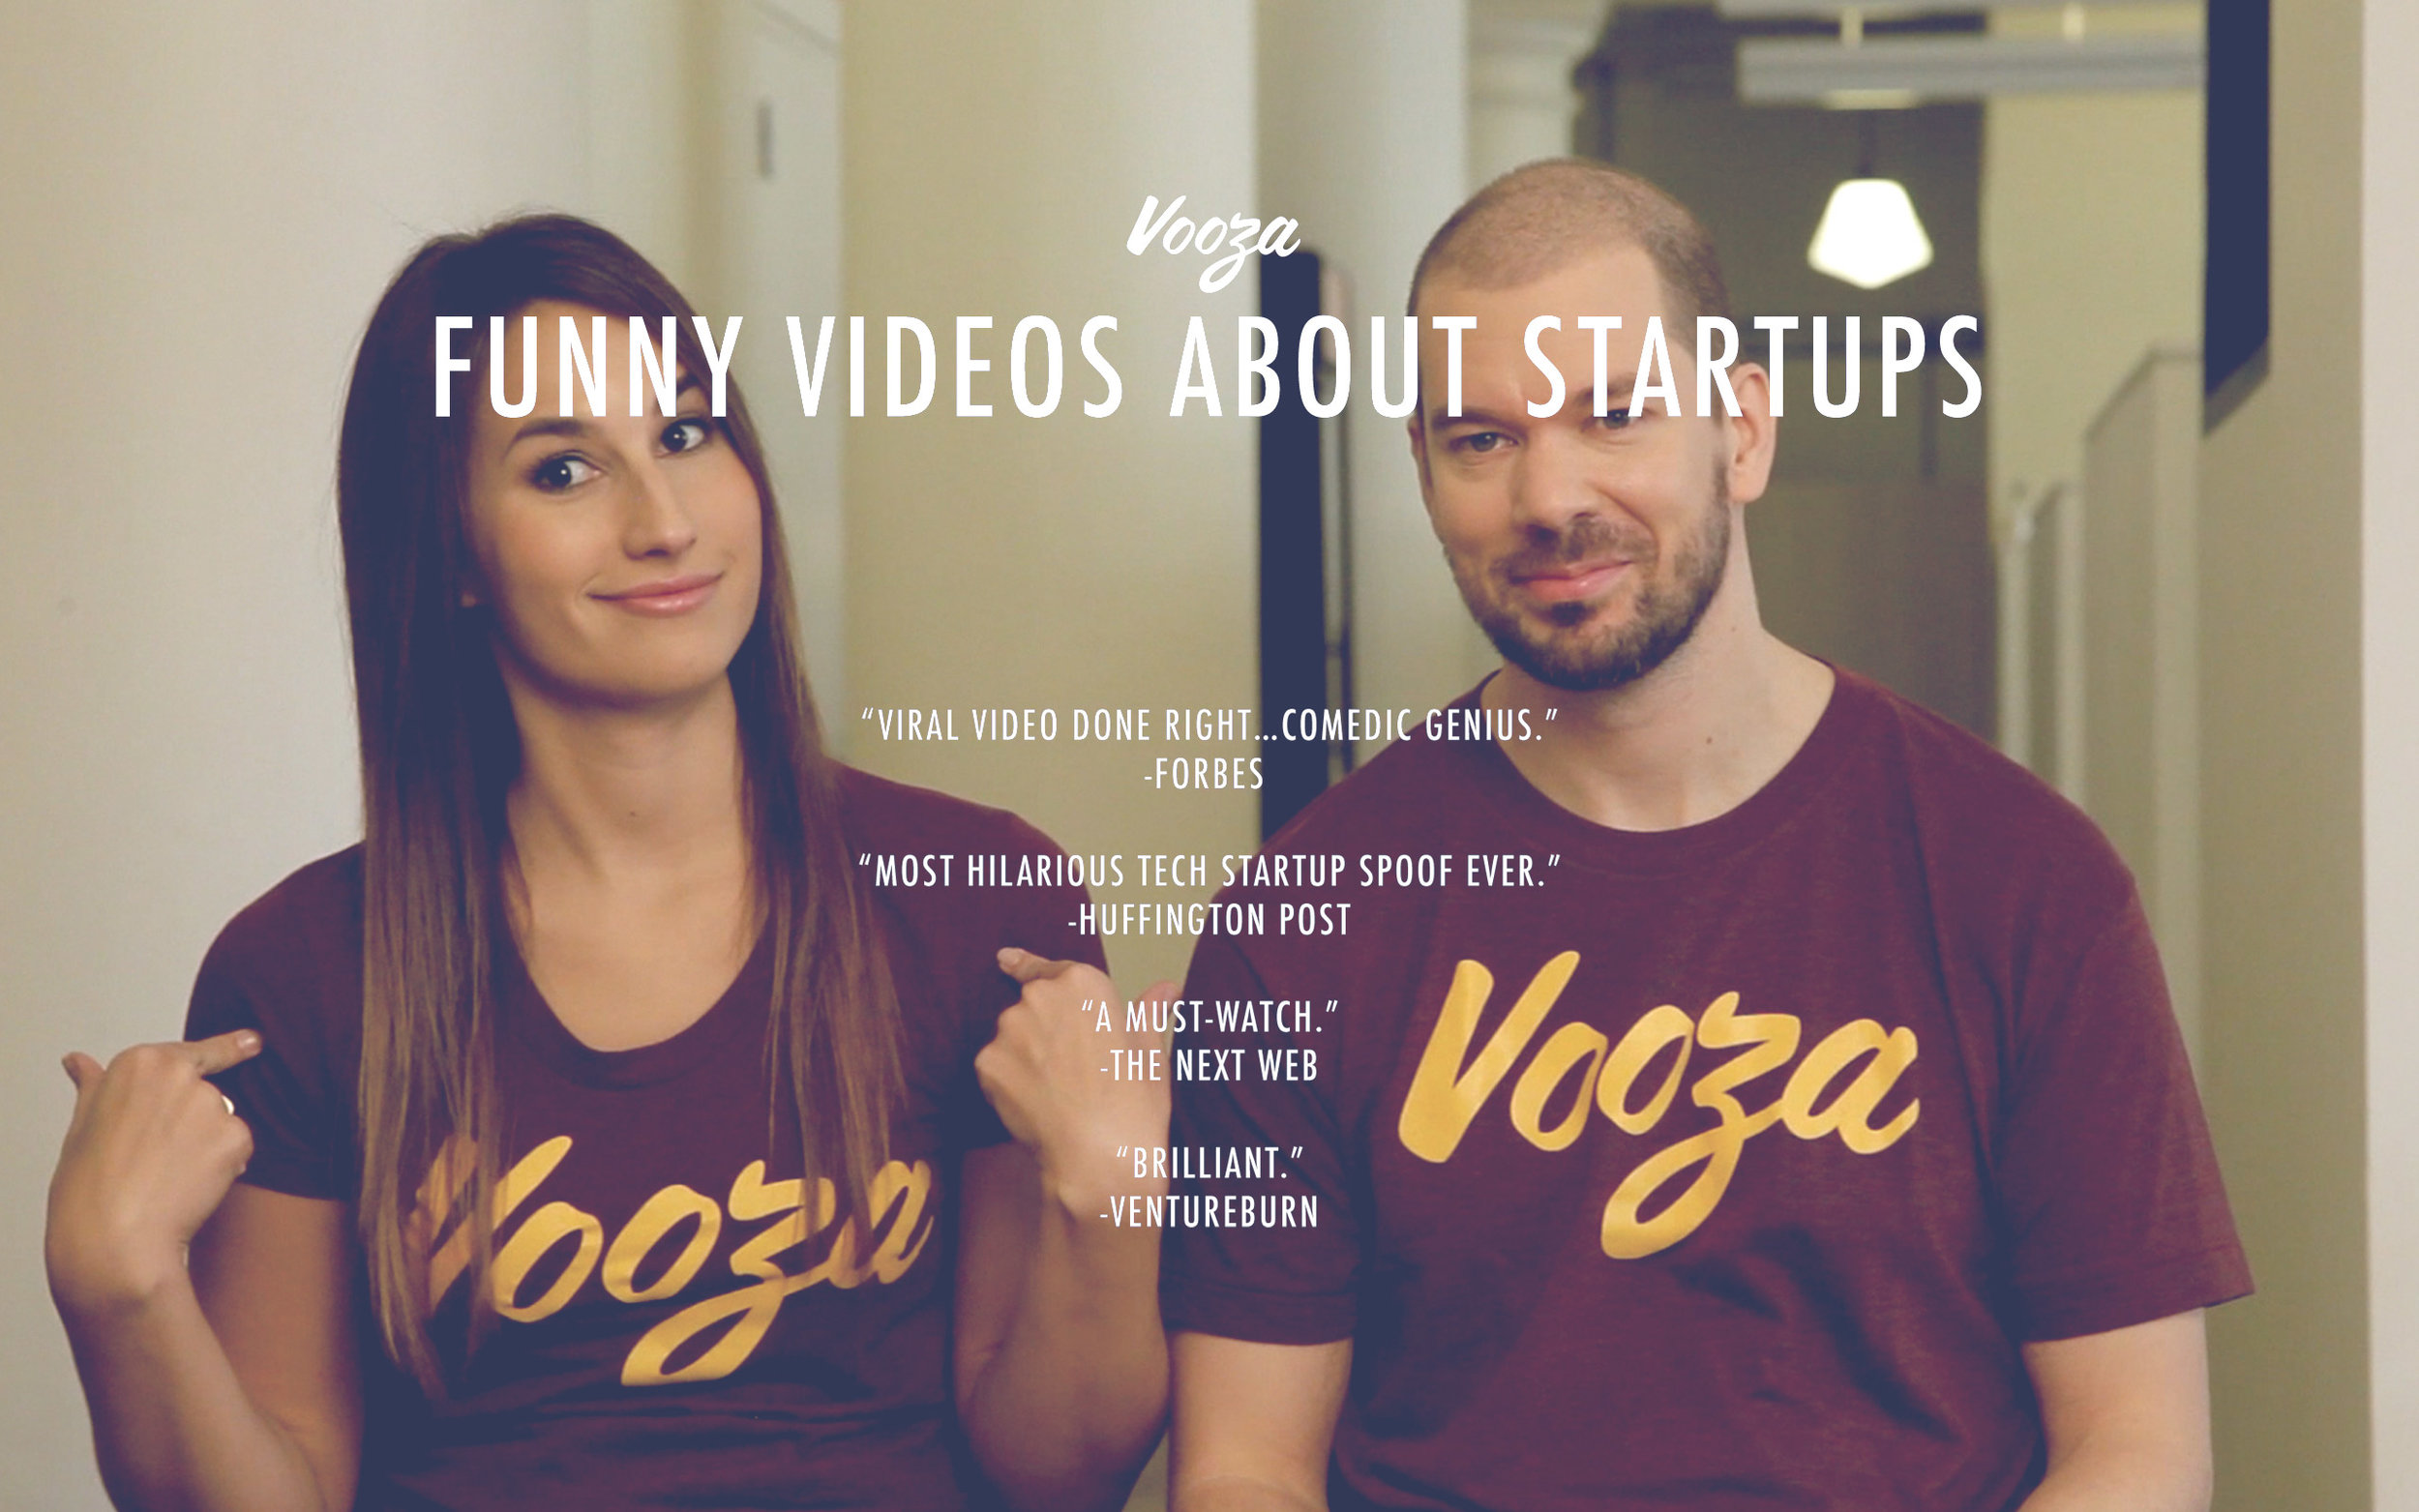 One of the shows we create is  Vooza , a video comic strip about the startup world that has received millions of views and  press  from publications like TechCrunch, Wired, NY Times, Vice, Inc, Mashable, and more.